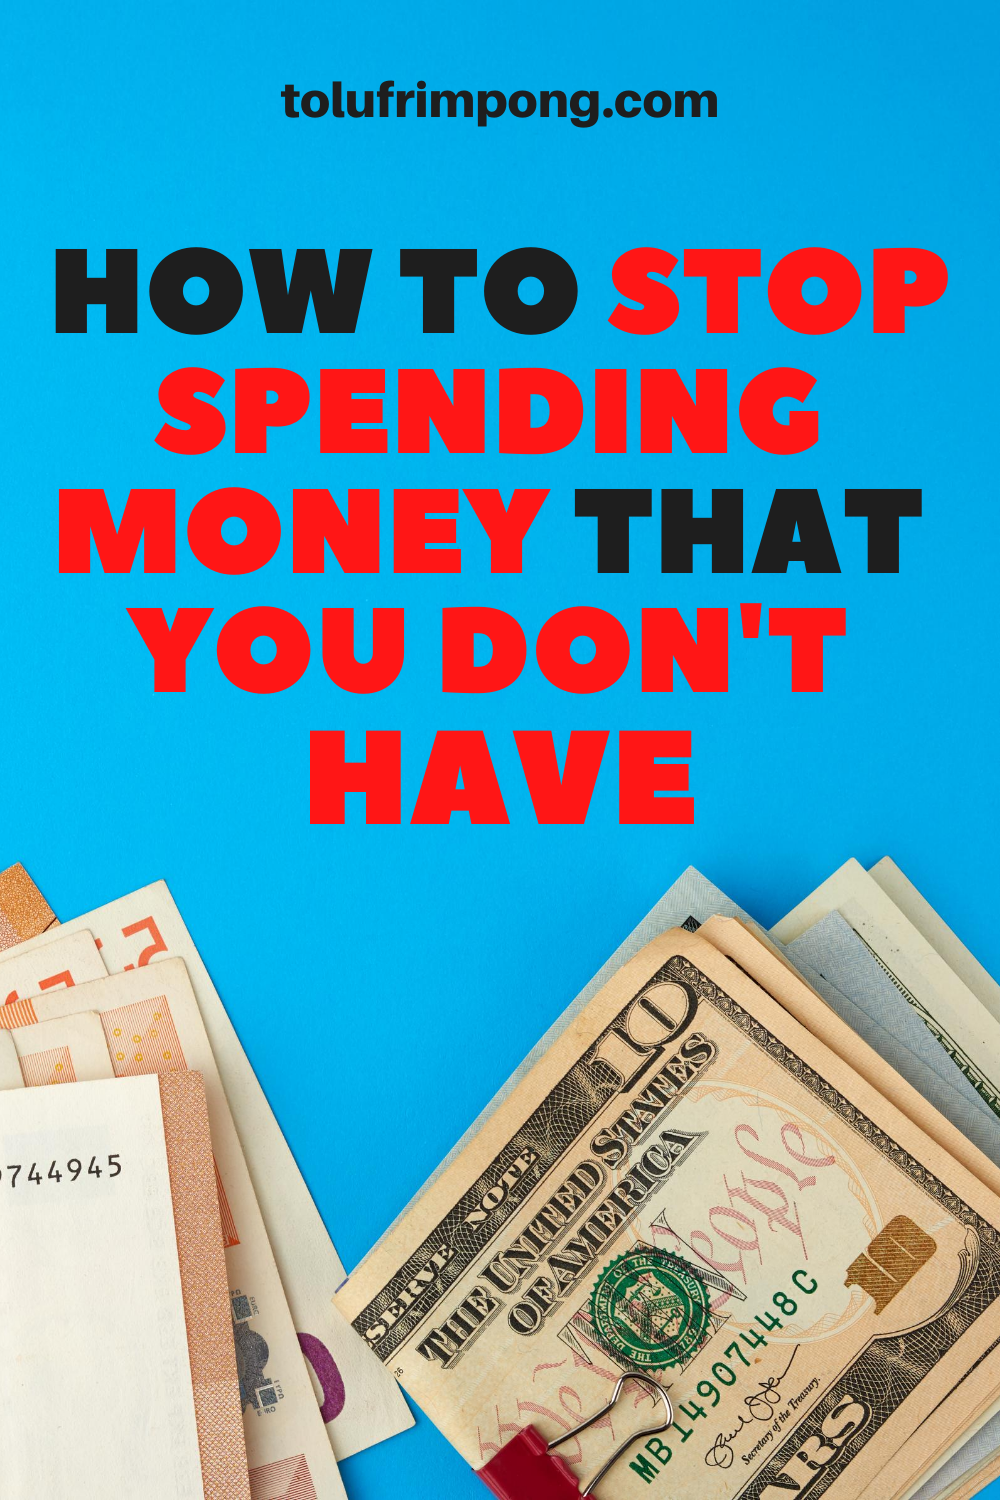 HOW TO STOP SPENDING MONEY THAT YOU DON'T HAVE